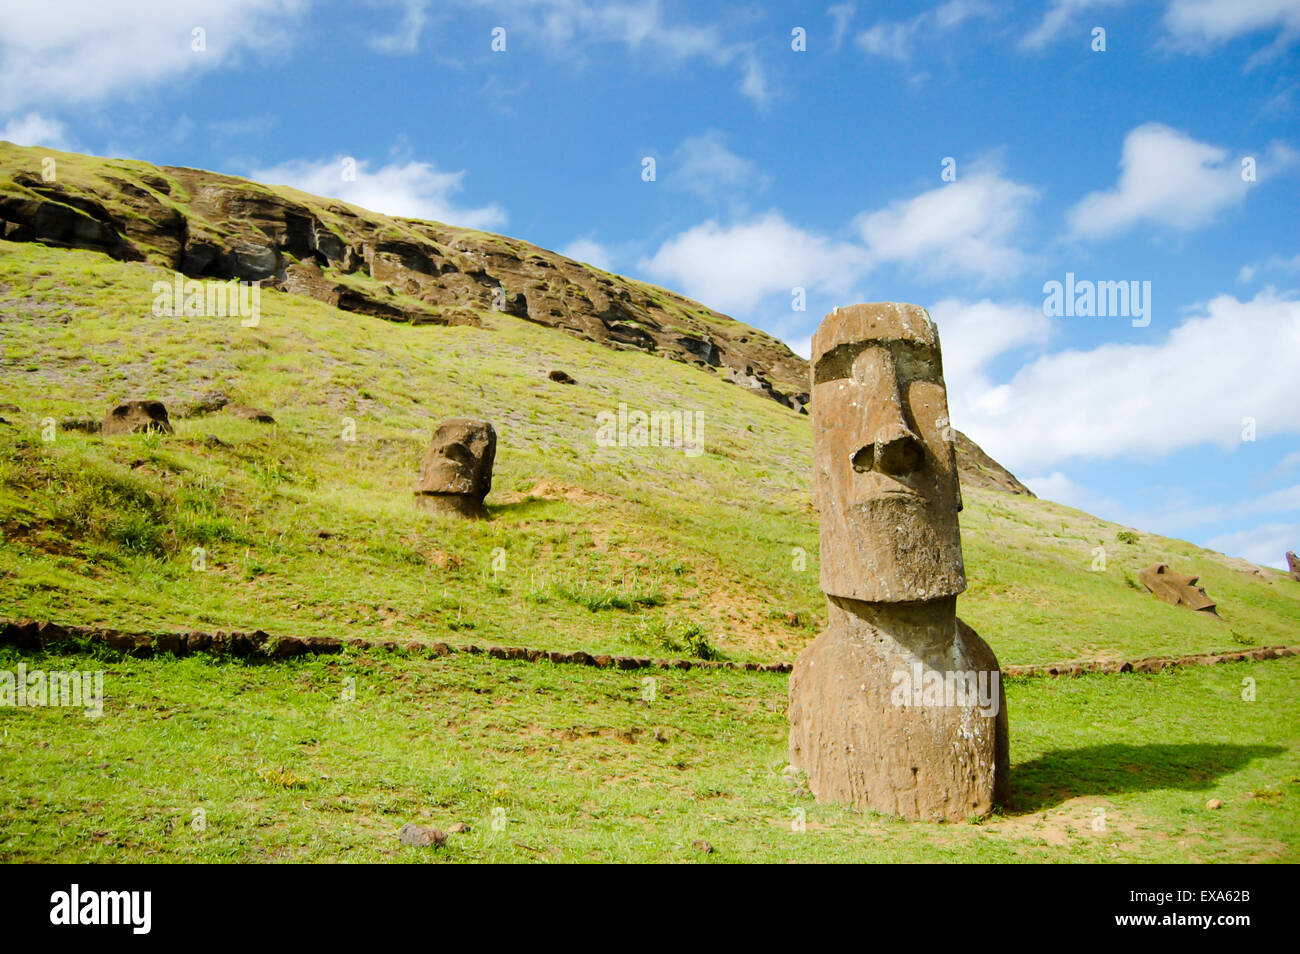 Moais - Easter Island - Stock Image